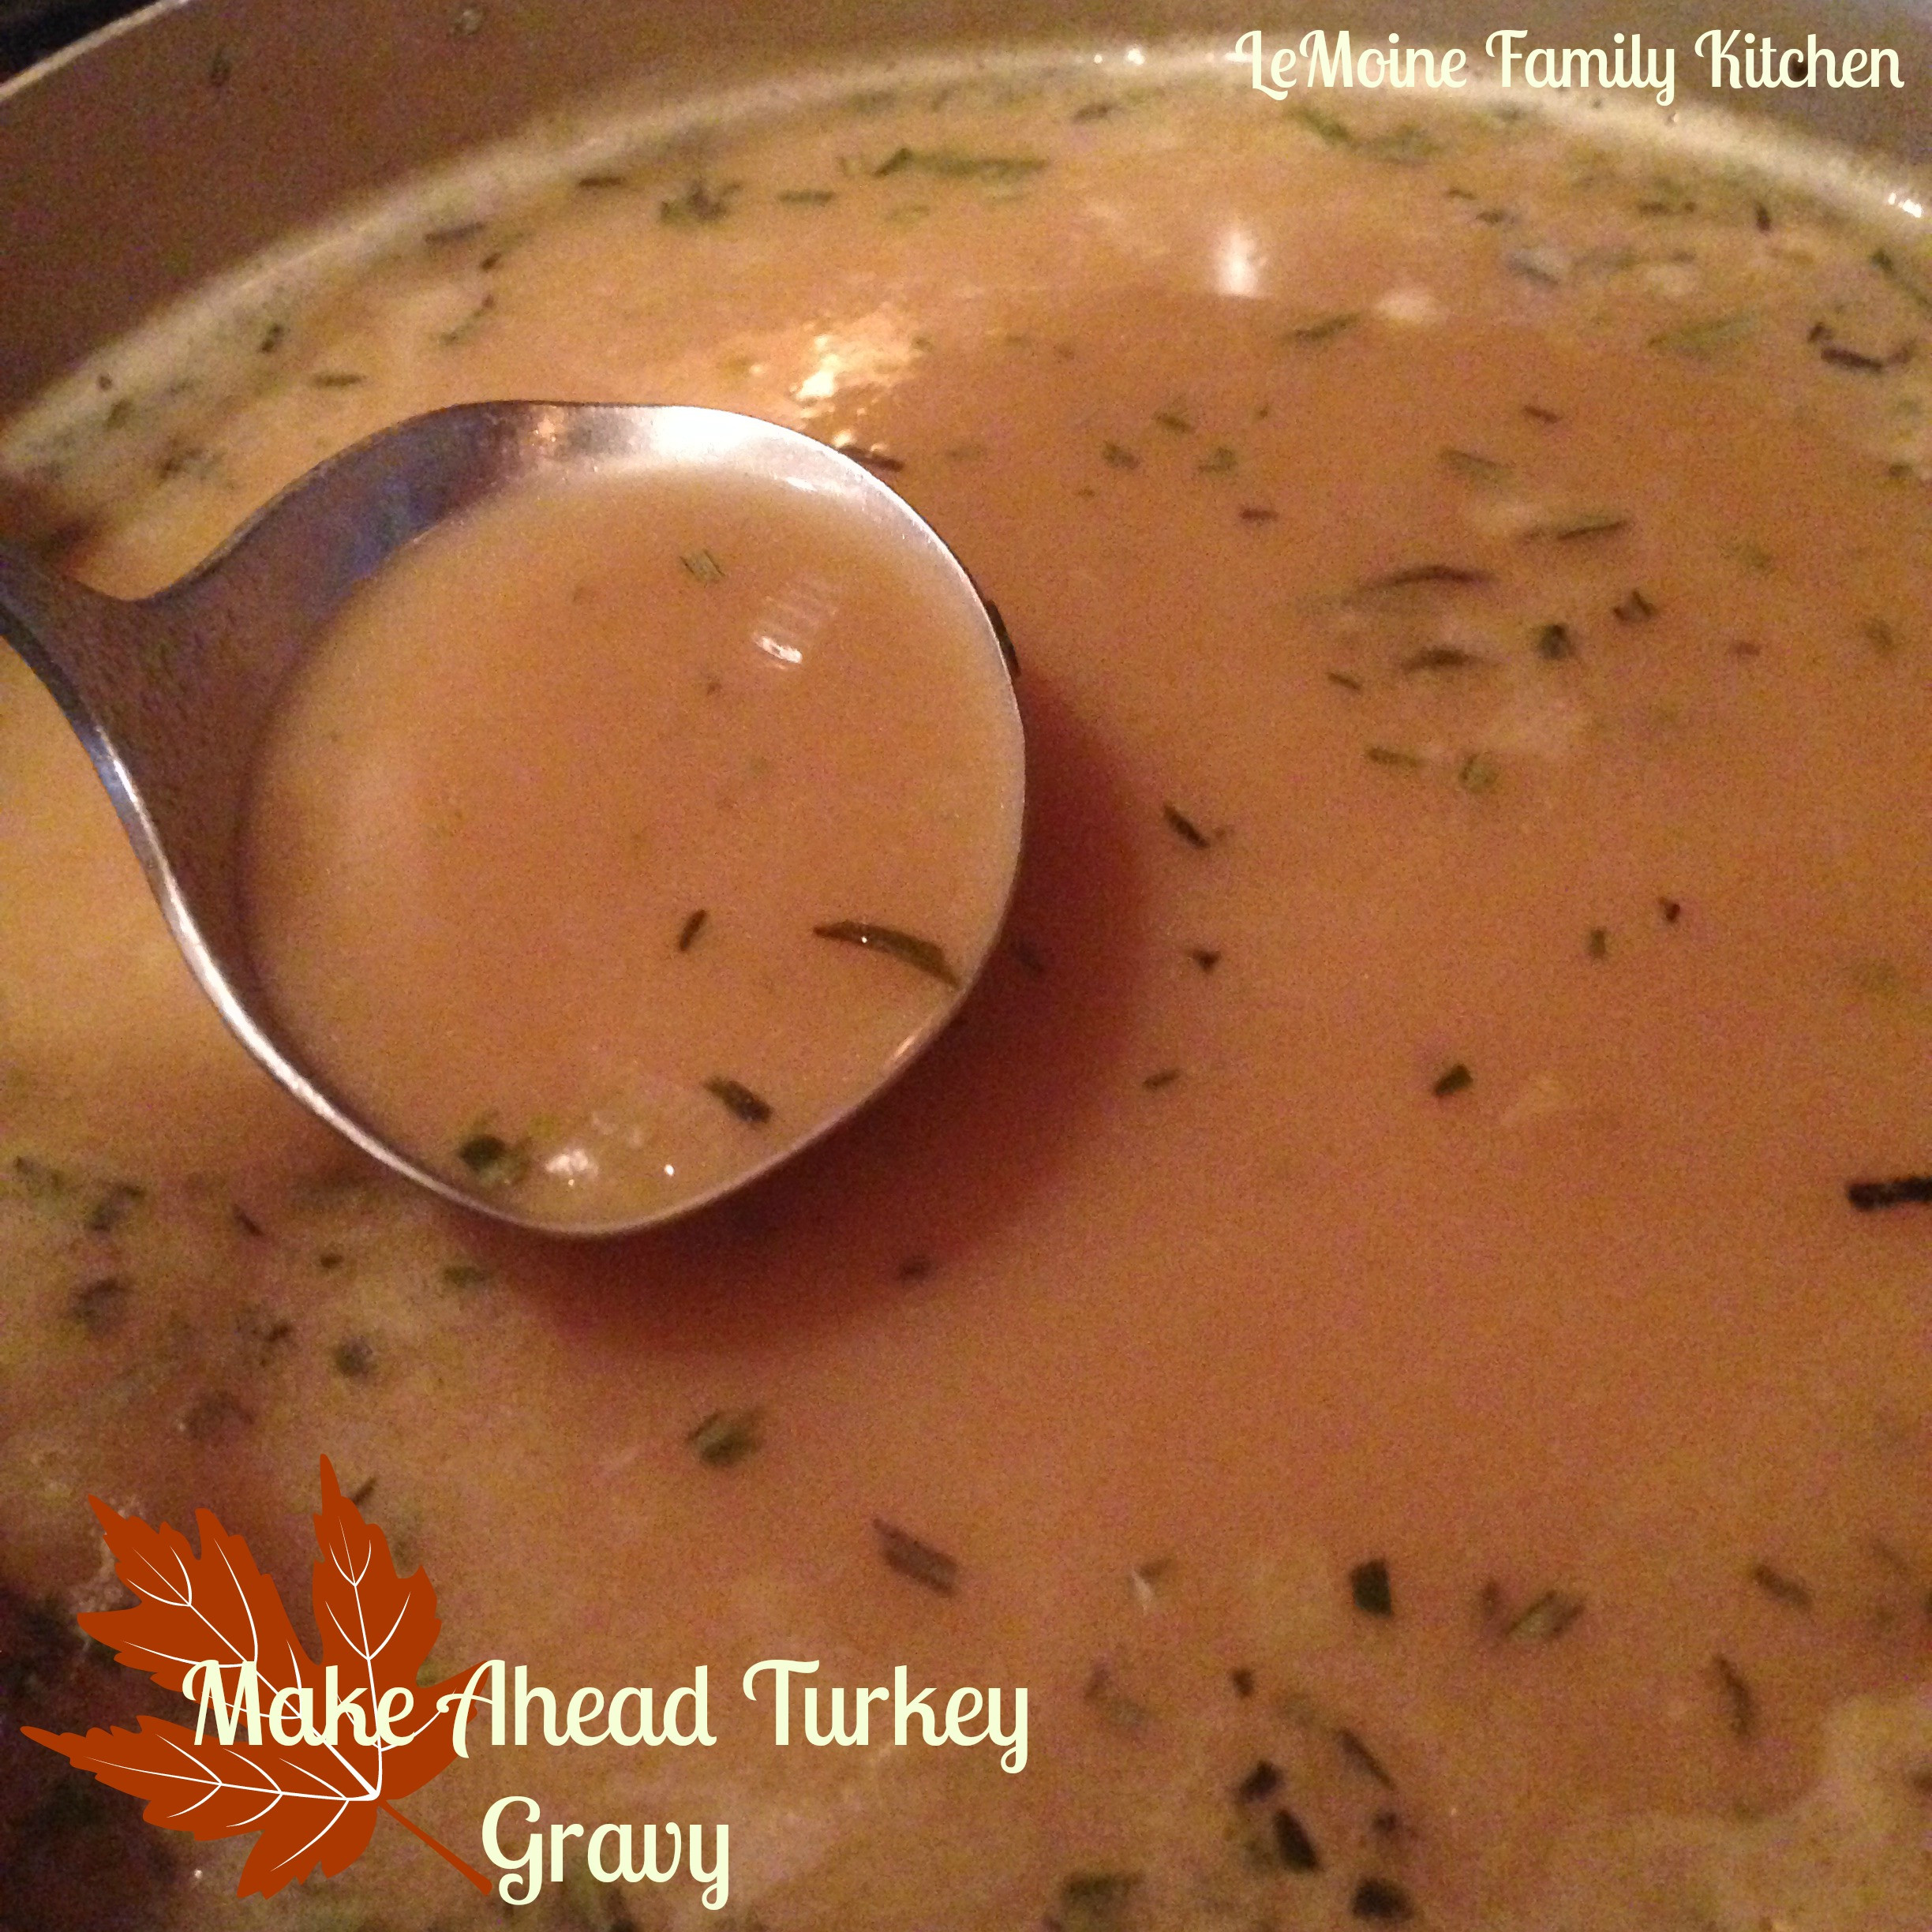 Make Ahead Turkey Gravy  Make Ahead Turkey Gravy Thanksgiving LeMoine Family